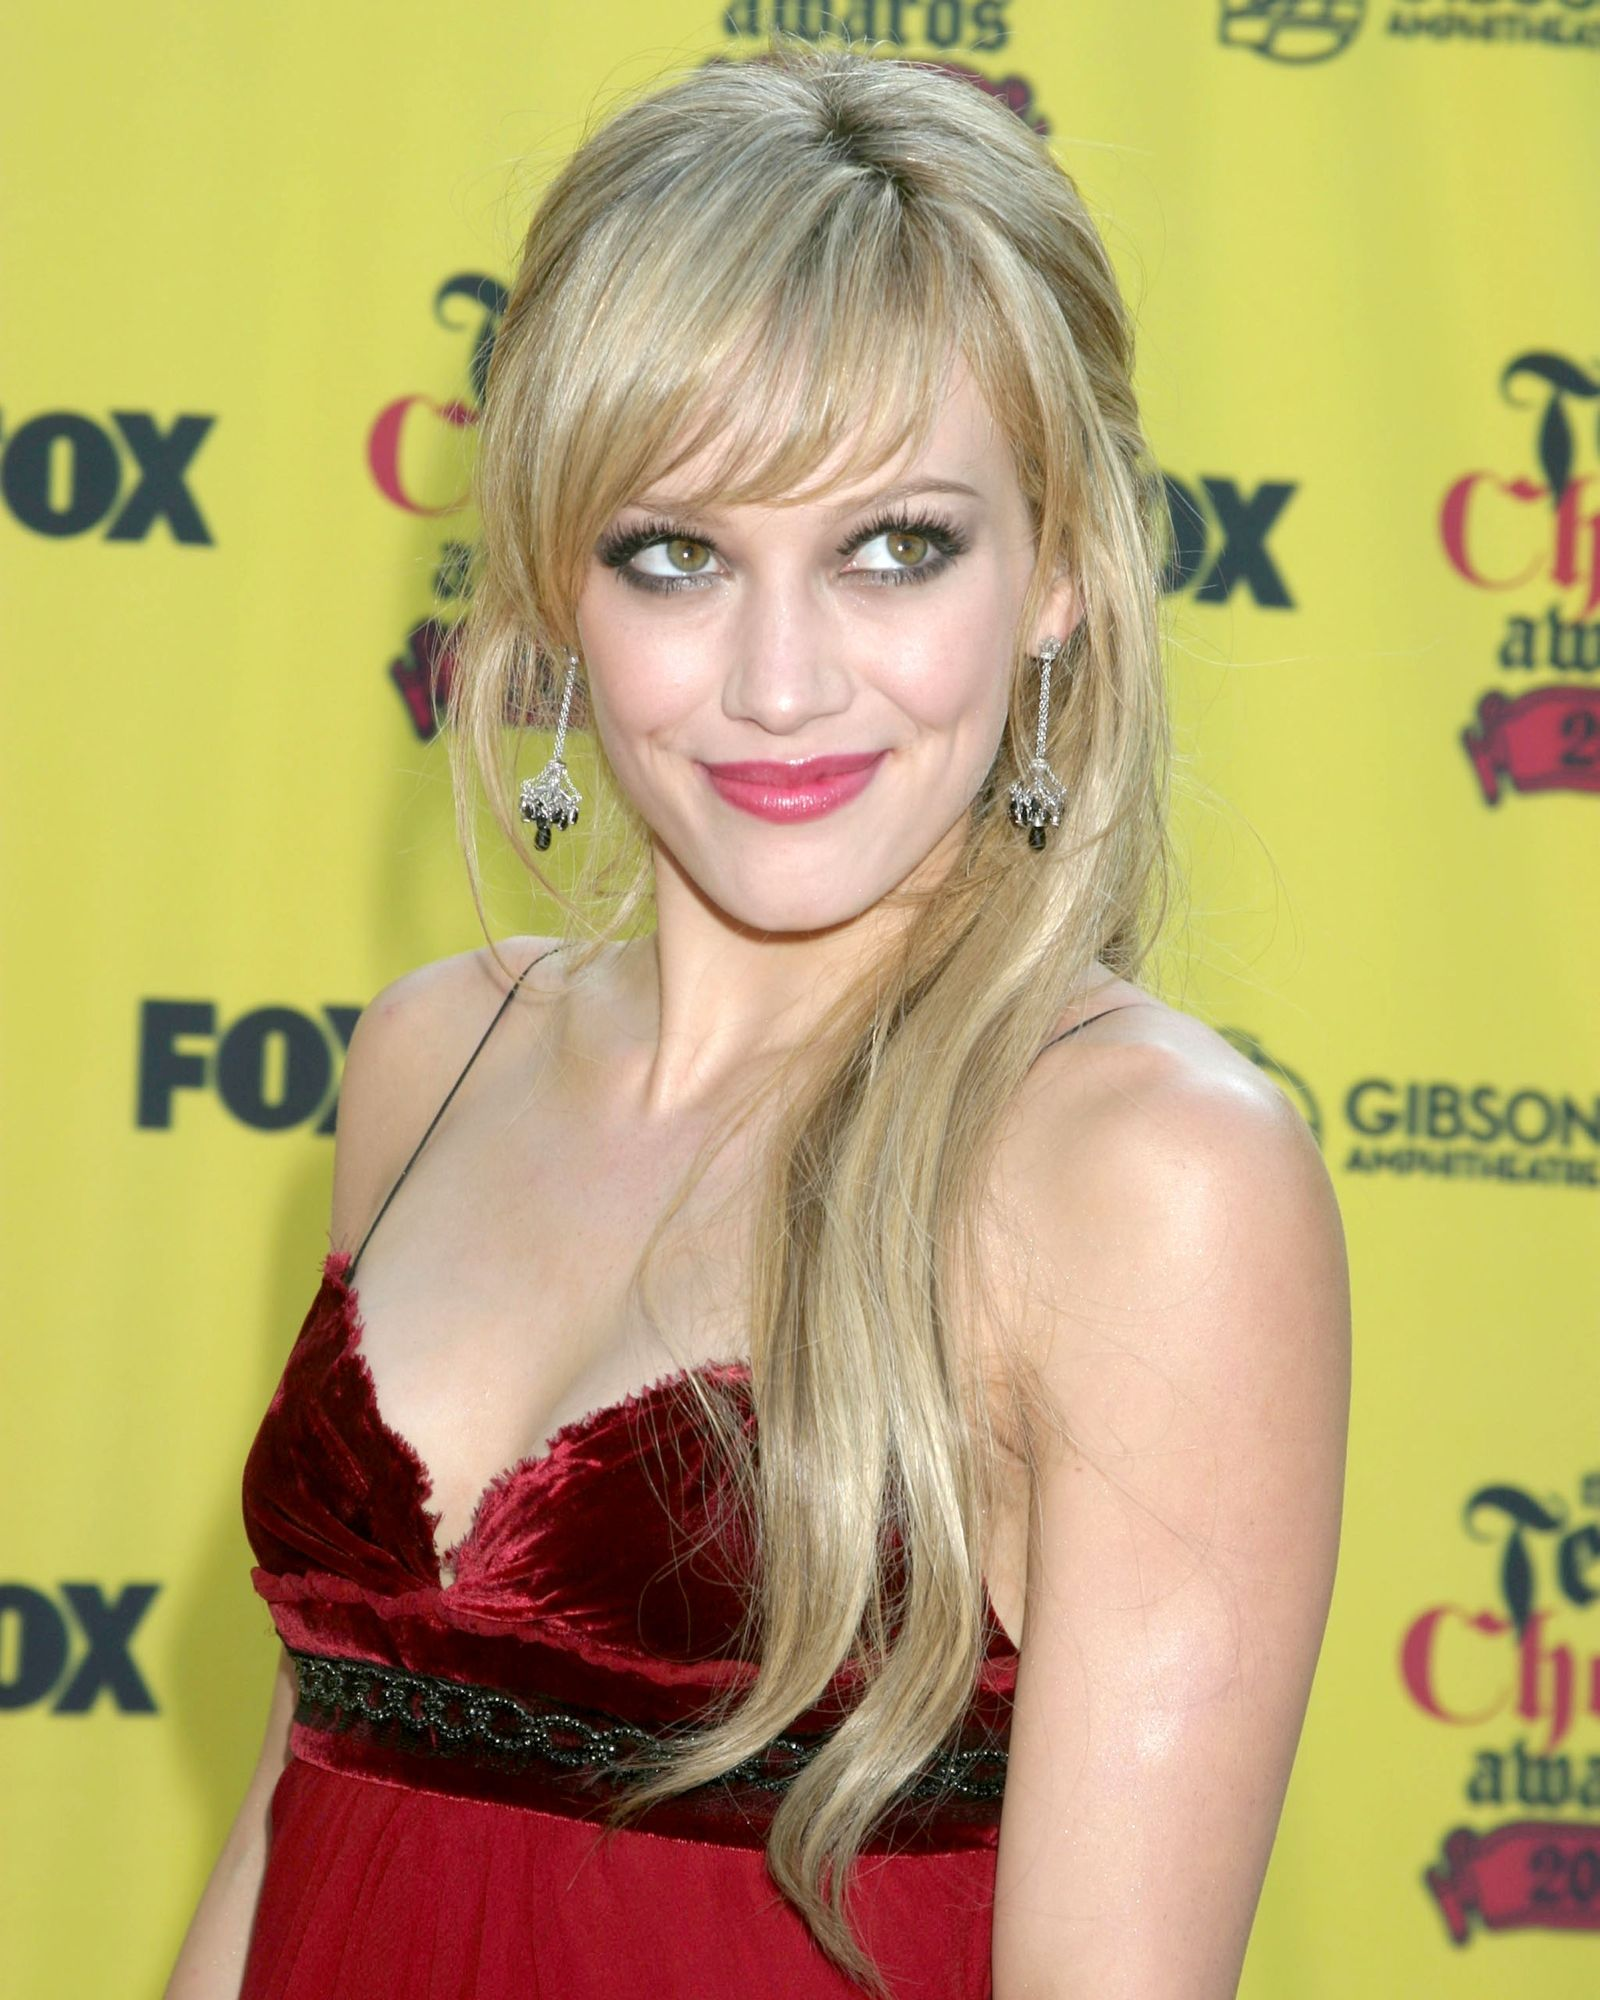 Hilary Duff's Long Straight Hairstyle for Women – Great Fashion all The Time